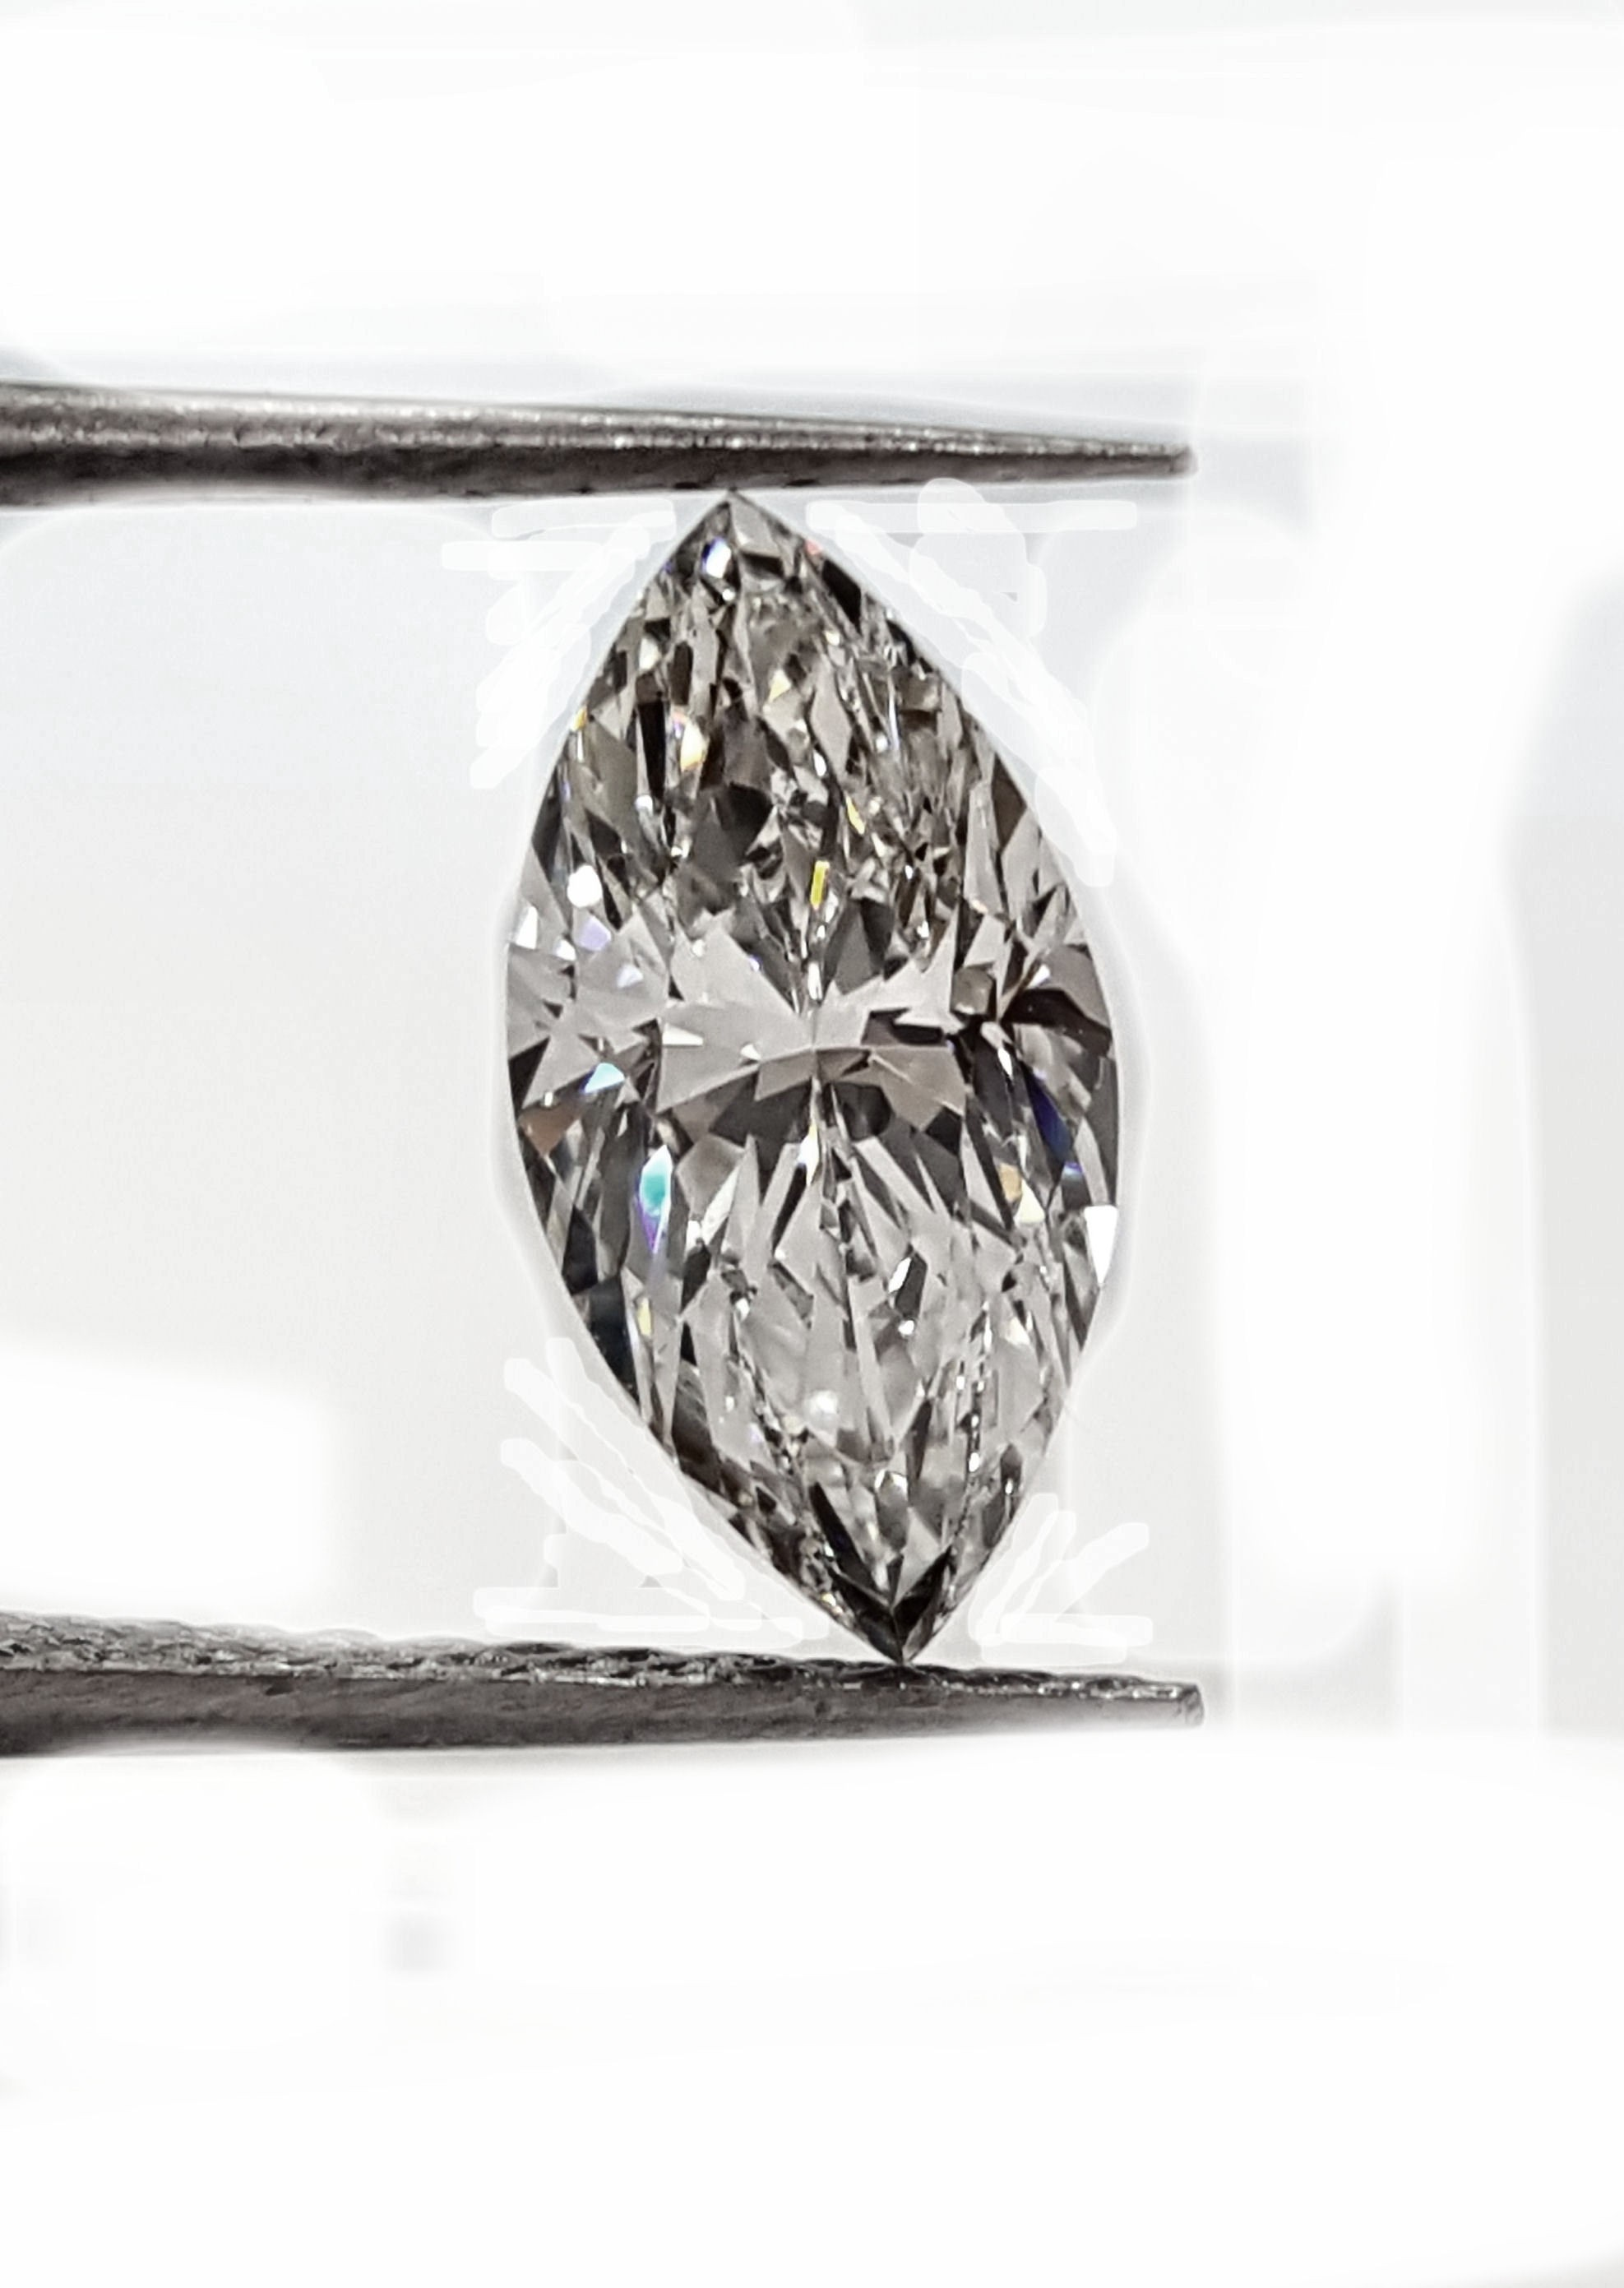 70pt. Marquise Shaped Diamond GIA certified